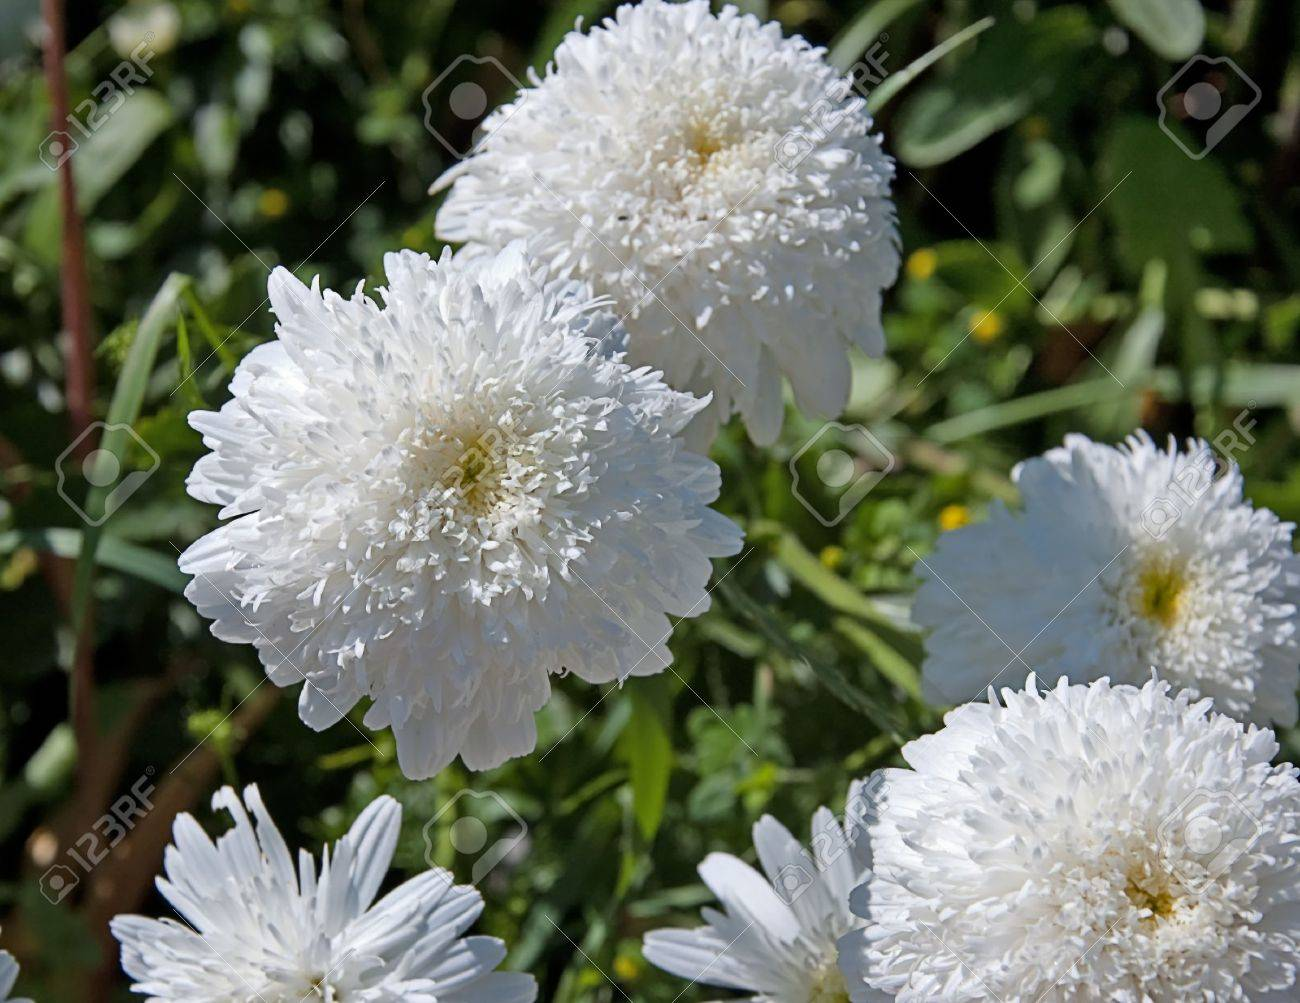 This shot is double full white daisies that look like big white stock photo this shot is double full white daisies that look like big white fluffy pompoms izmirmasajfo